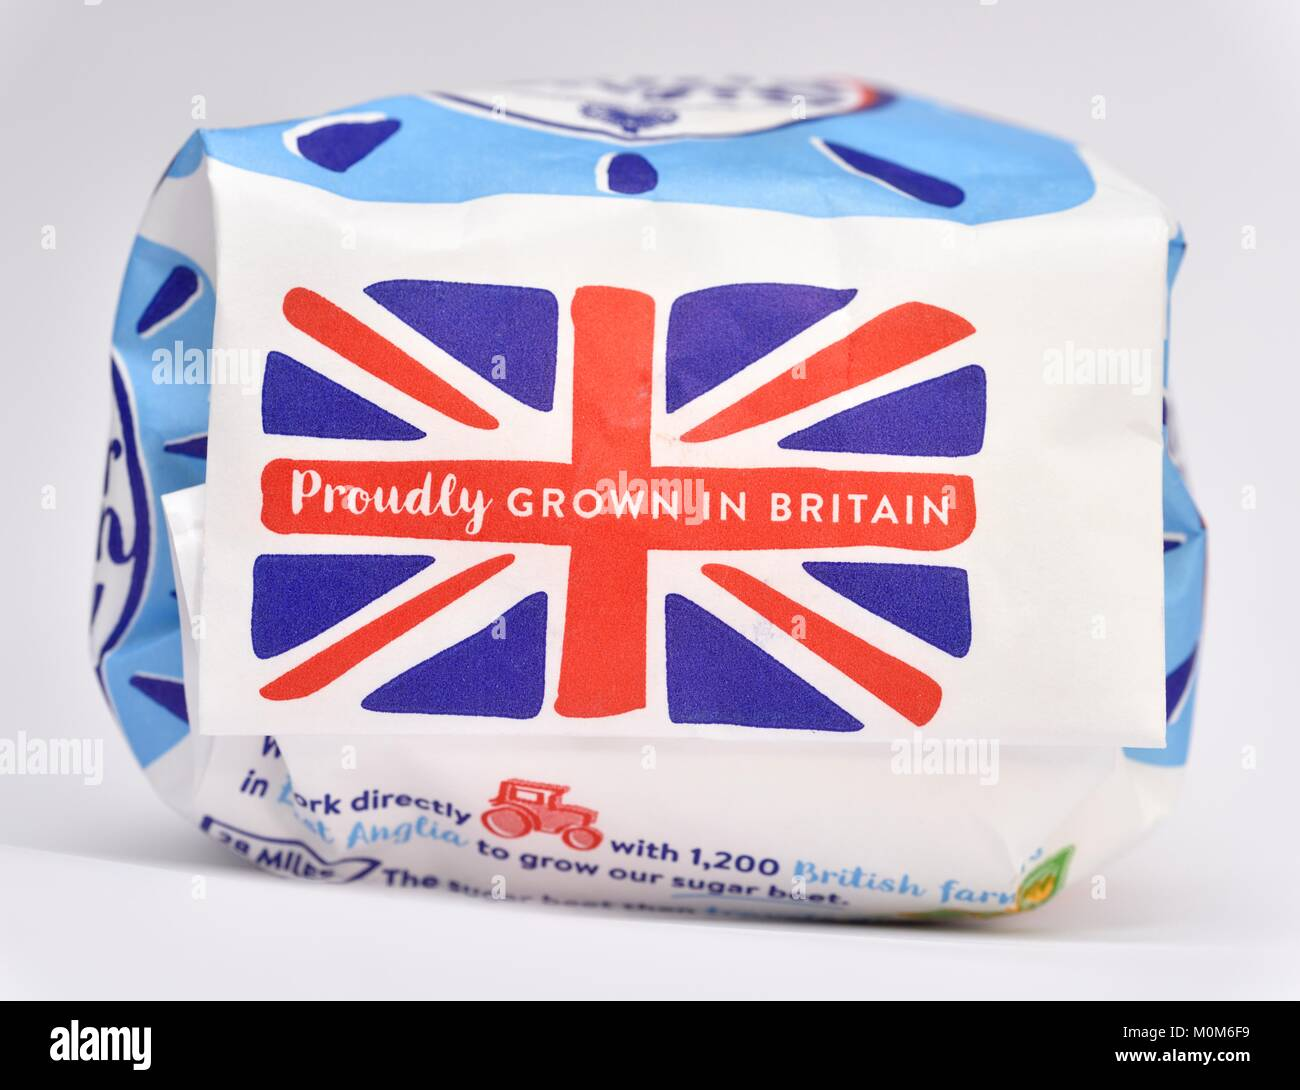 Proudly Grown In Britain - Stock Image